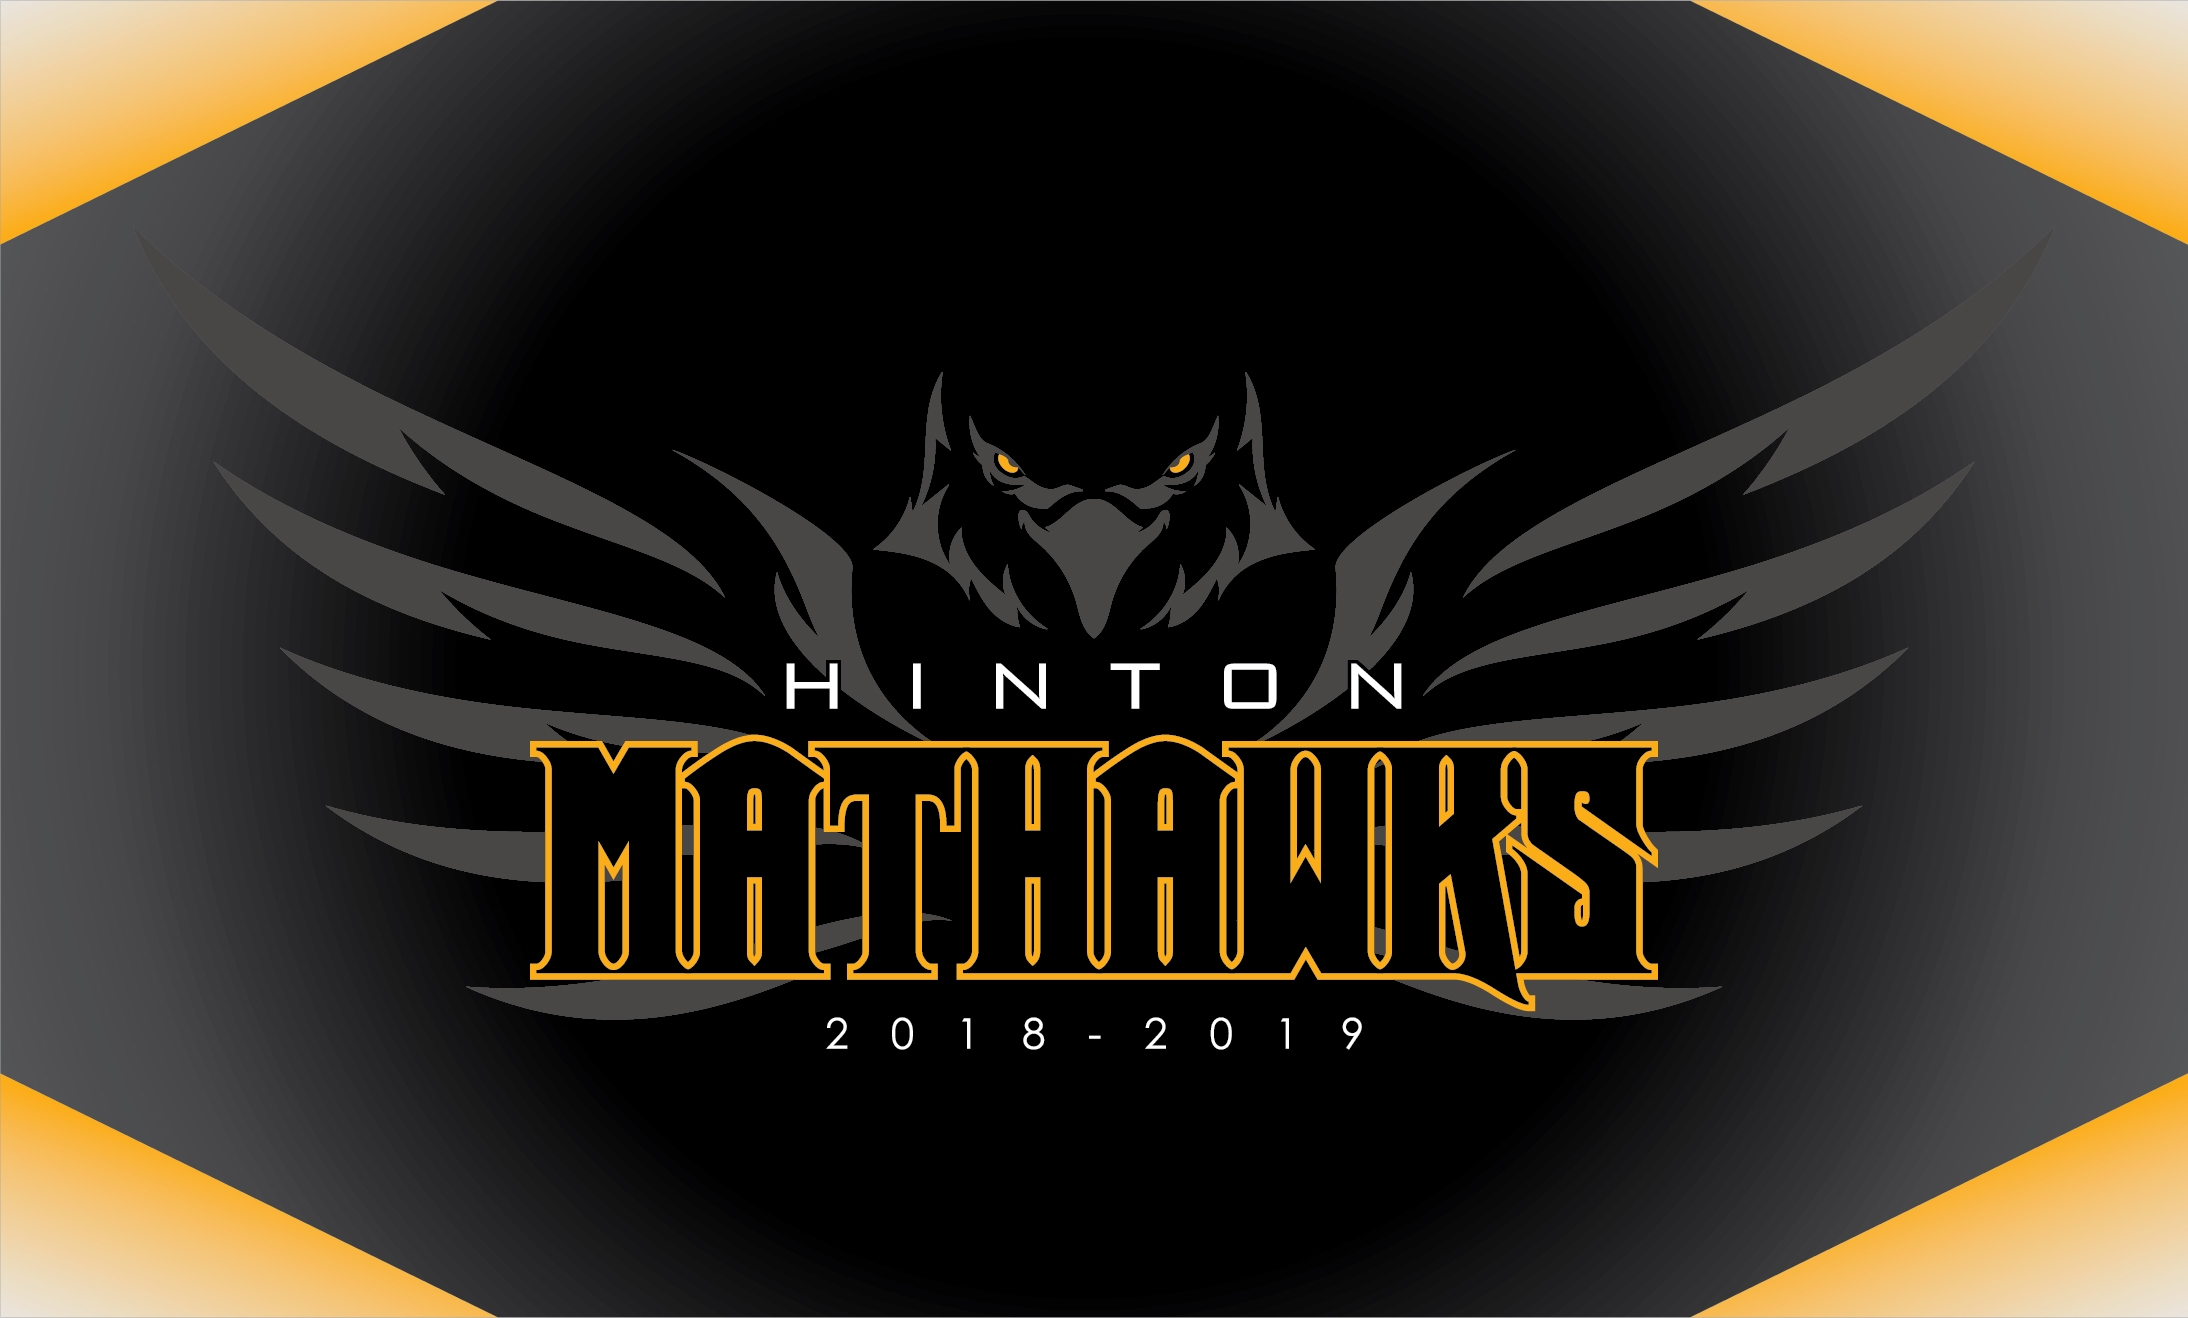 Hinton MatHawk Wrestling